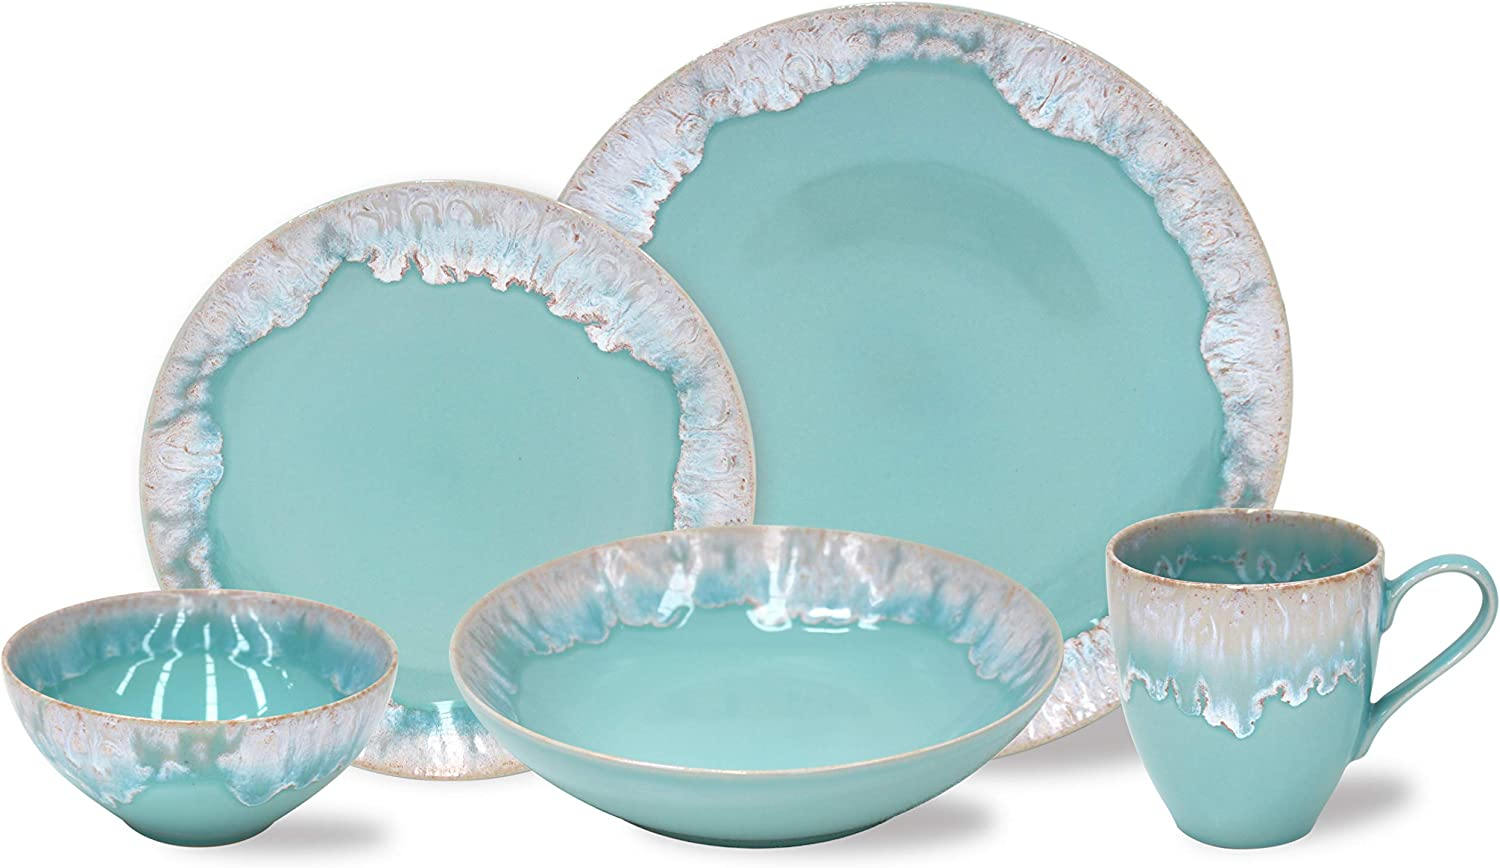 Casafina Taormina Collection Stoneware Ceramic 5-Piece Place Setting